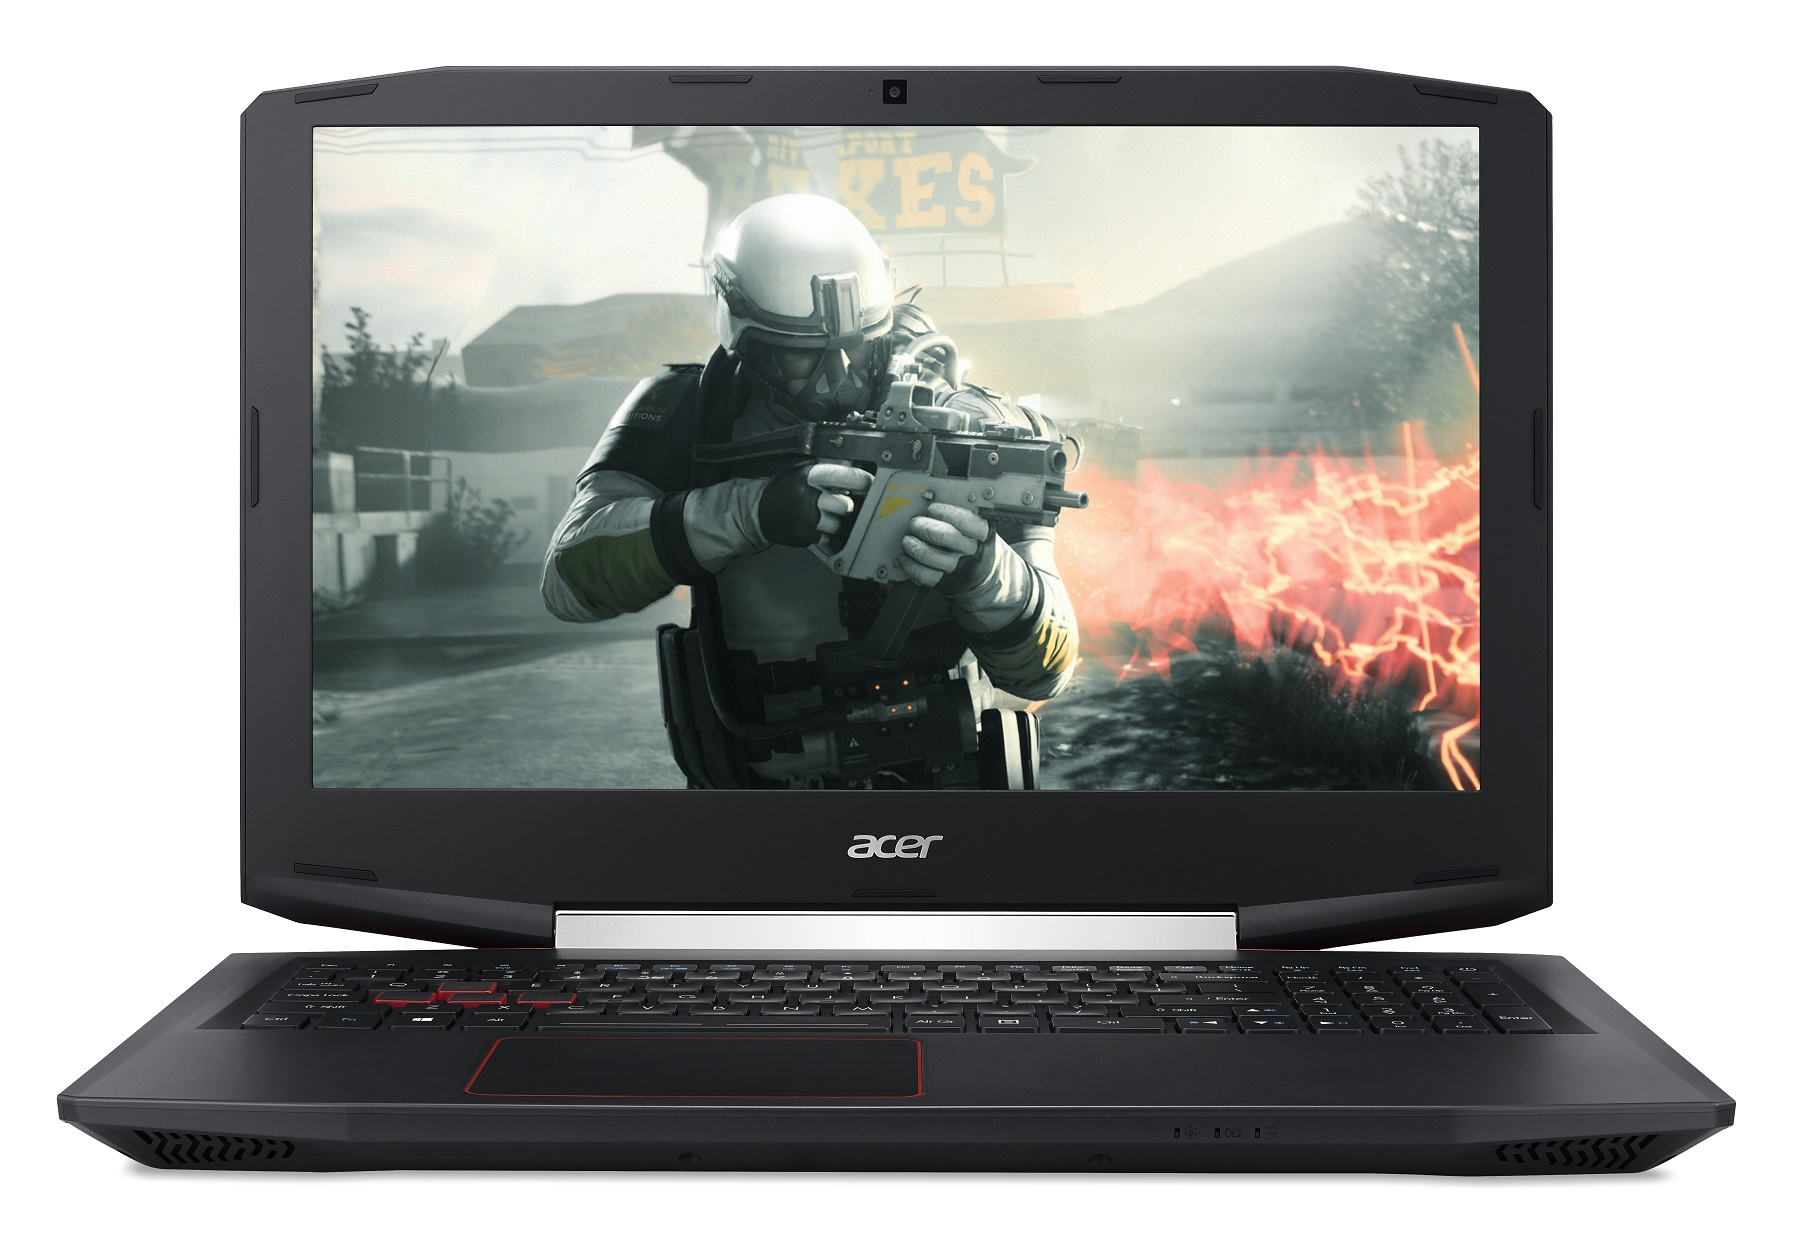 "Acer Aspire VX 15 VX5-591G-7061 Gaming Notebook i7-7700HQ Processor 2.8GHz 15.6"" GTX 1050 256SSD 16 GB... by Acer"